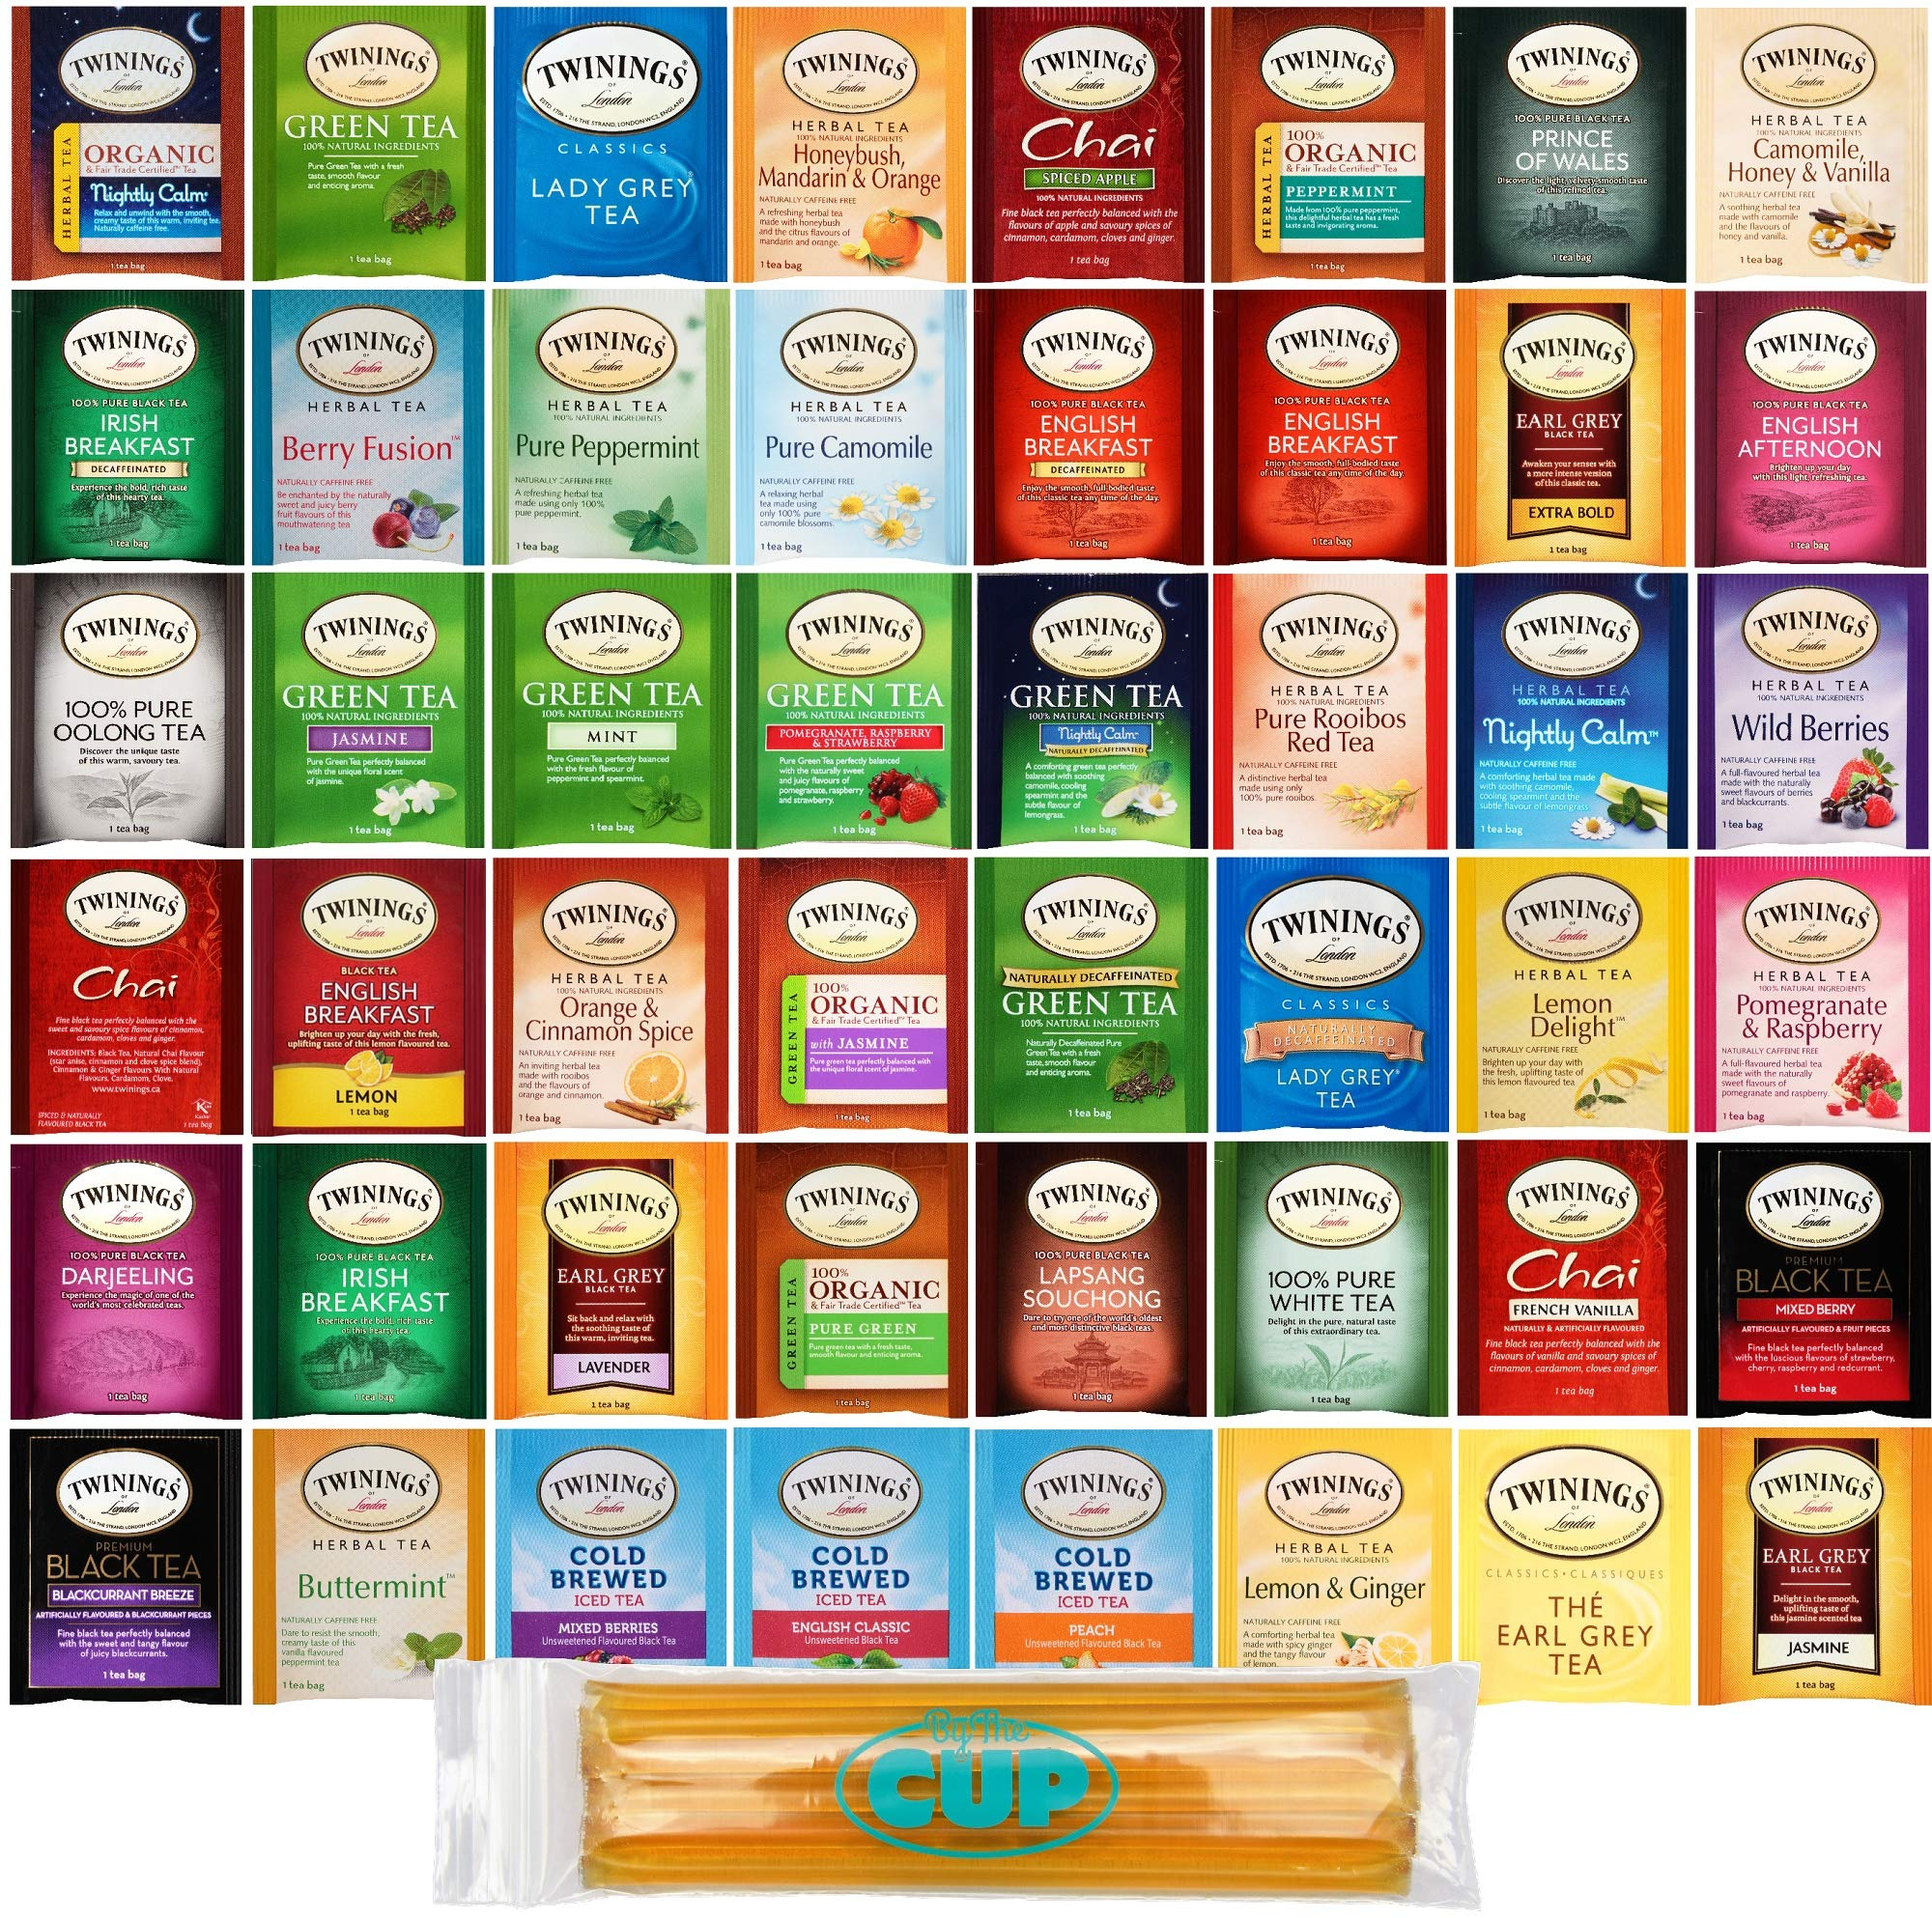 Twinings Hot Tea Sampler Gift Pack, 96 Count Assortment Includes Organic, Green, Black, Herbal, Earl Grey, English Breakfast, Decaf, Camomile, Chai Tea and More with By The Cup Honey Sticks